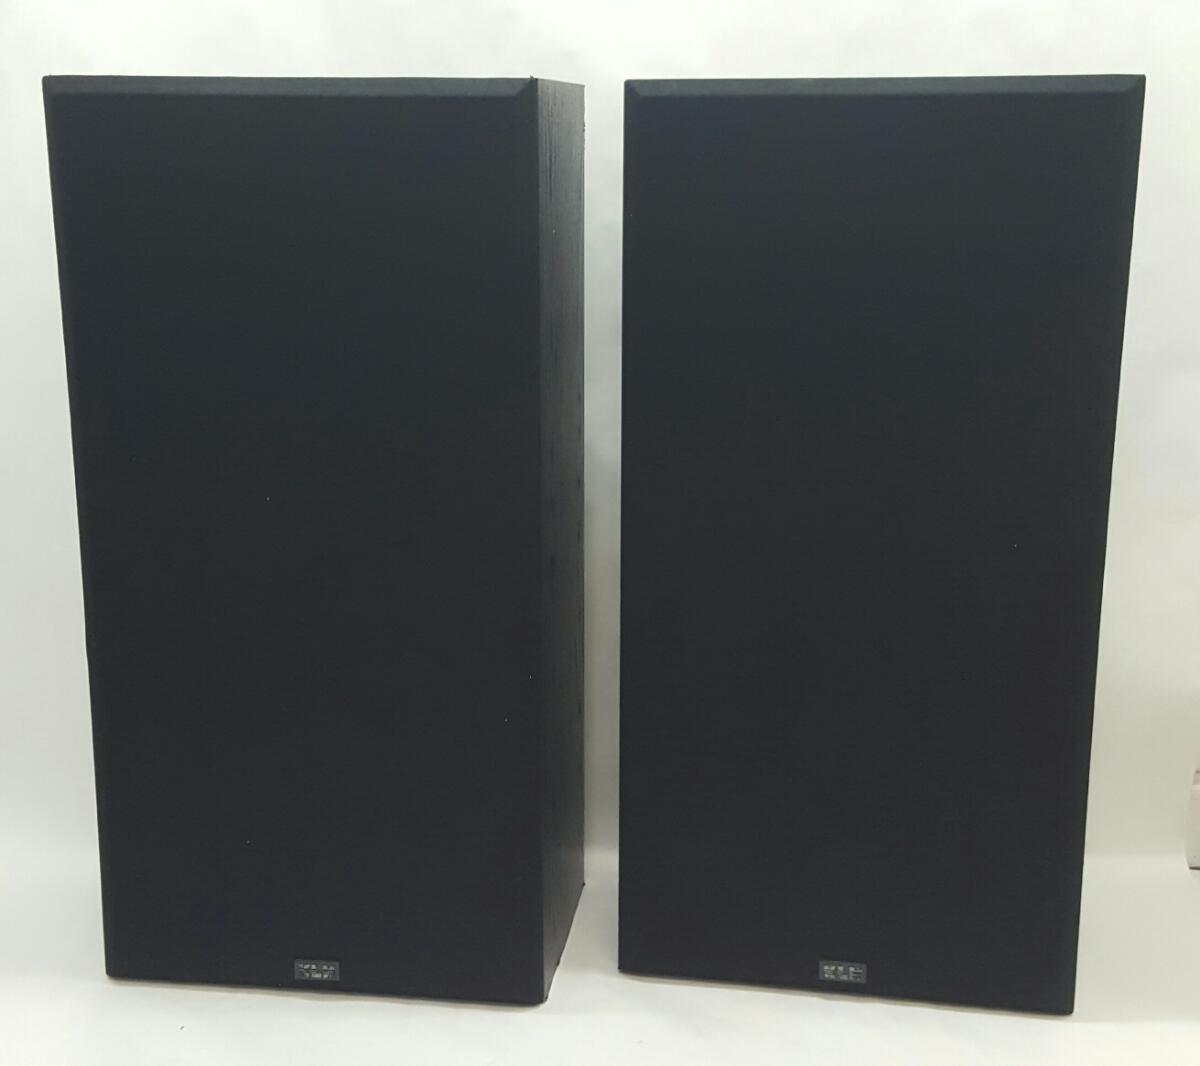 Klh Audio Klh 9912 12 250watt Tower Speakers Very Good Heartland Pawnbrokers Kansas